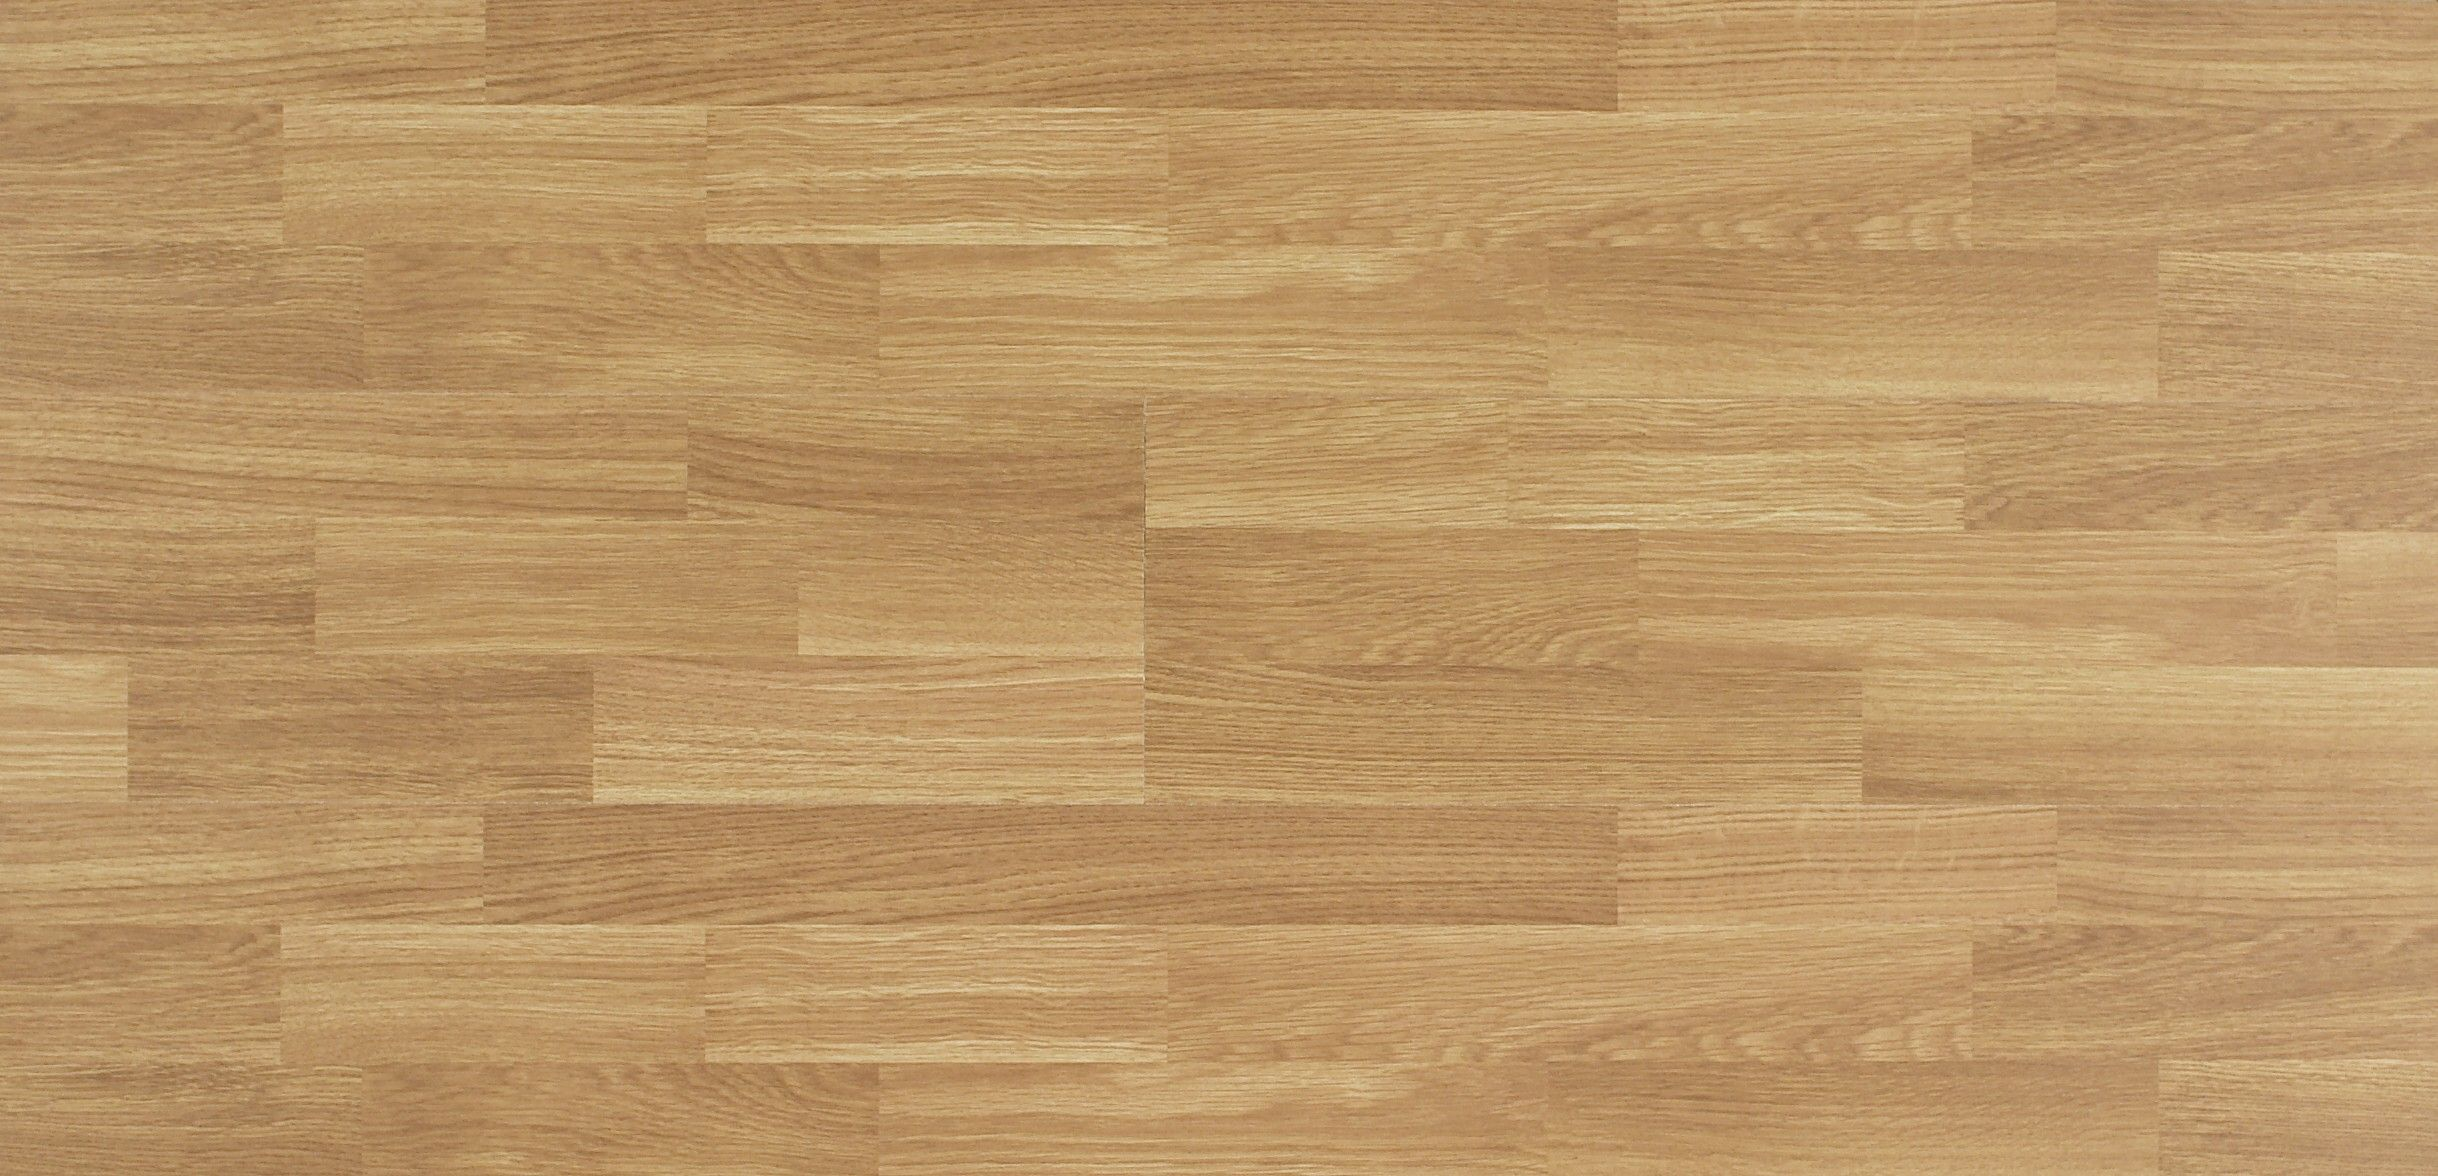 Wood tiles texture wooden texture rooms b pinterest for Floor wood texture